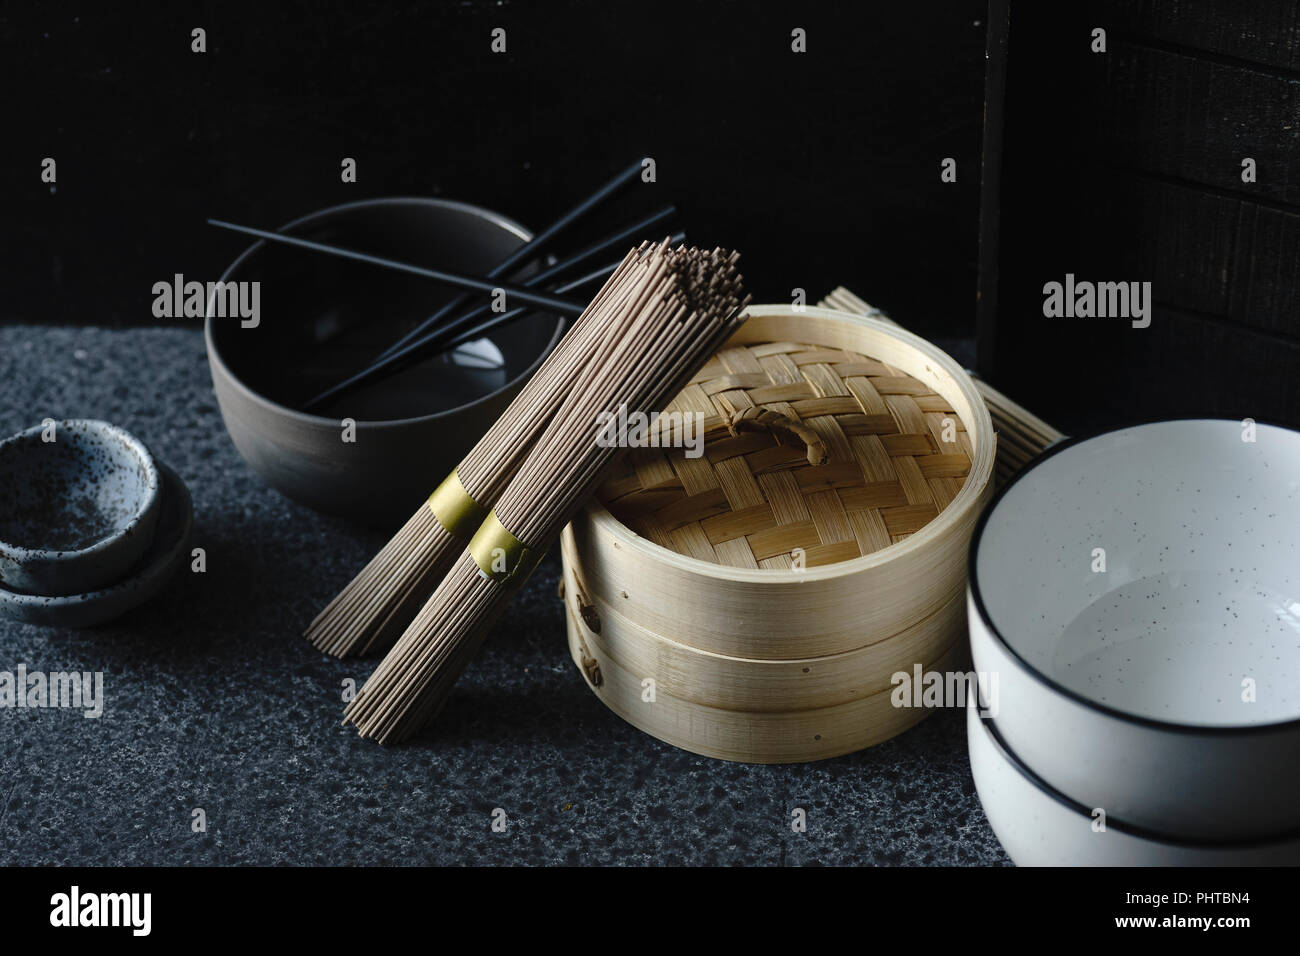 Soba noodles, bamboo steamer and asian cuisine props on dark background - Stock Image